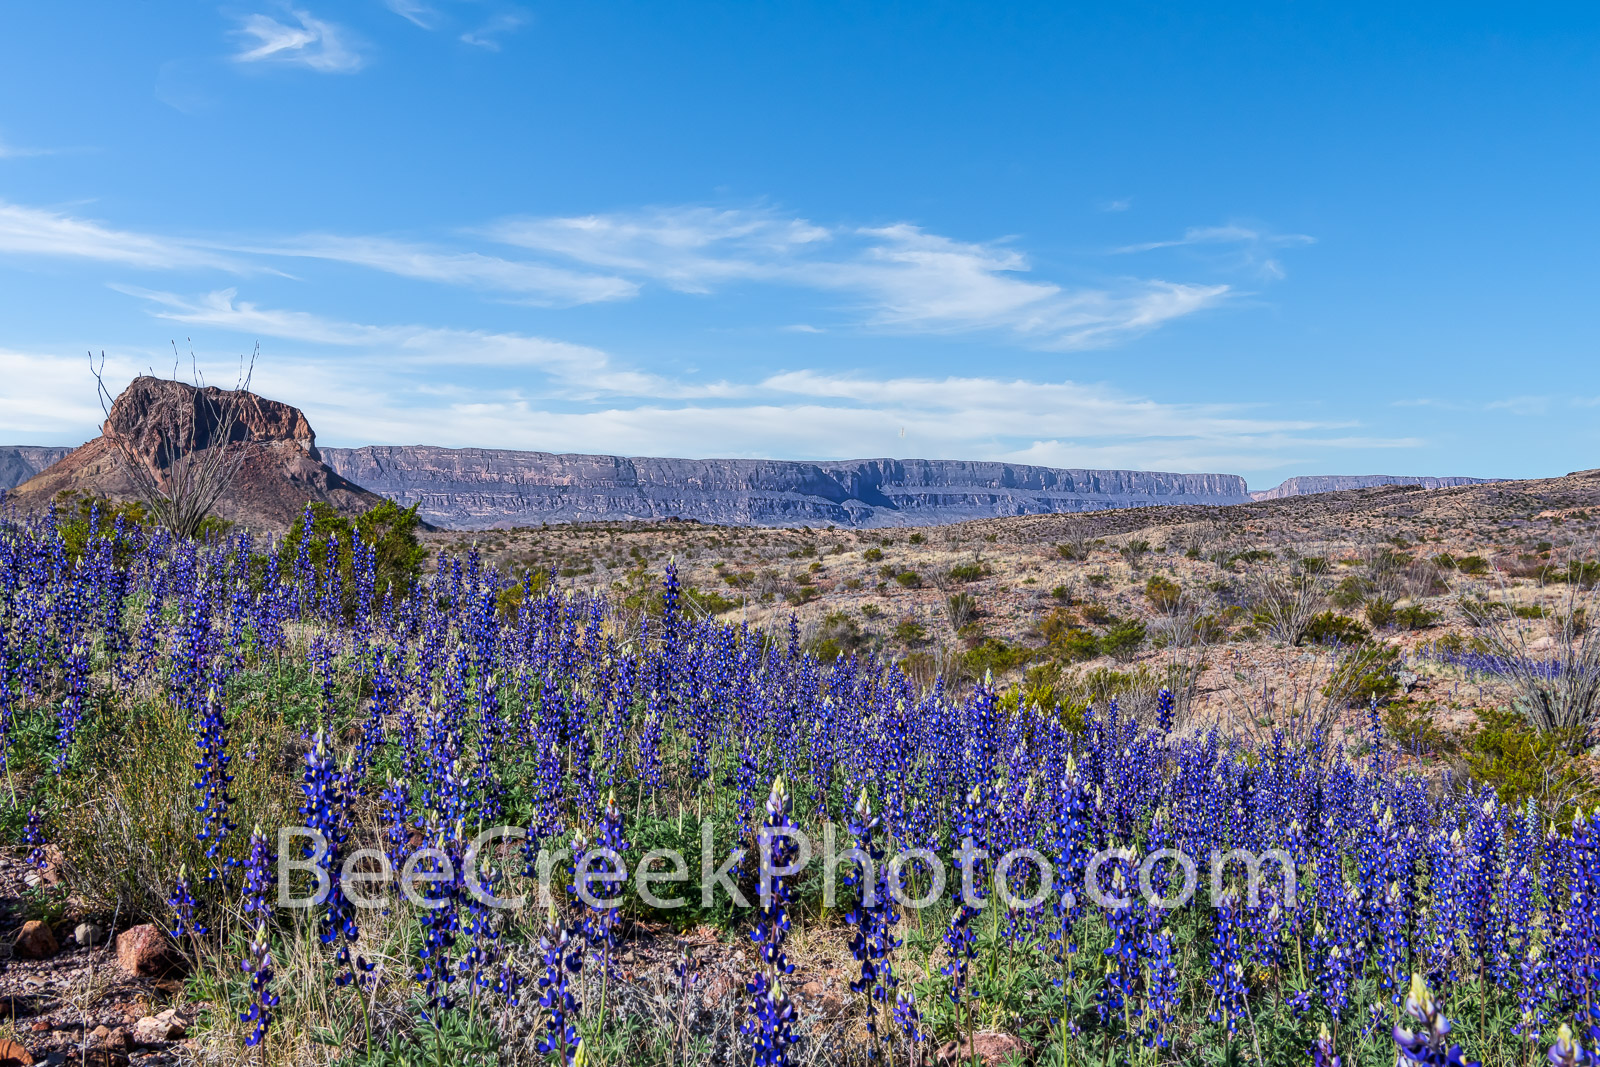 Big Bend National Park, image of bluebonnets, Cerro Castillian, Santa elena Canyon, mountains, desert, big bend, texas bluebonnets, Big Bend Bluebonnet, Big Bend Lupine, Havard Bluebonnet, Chisos Blue, photo